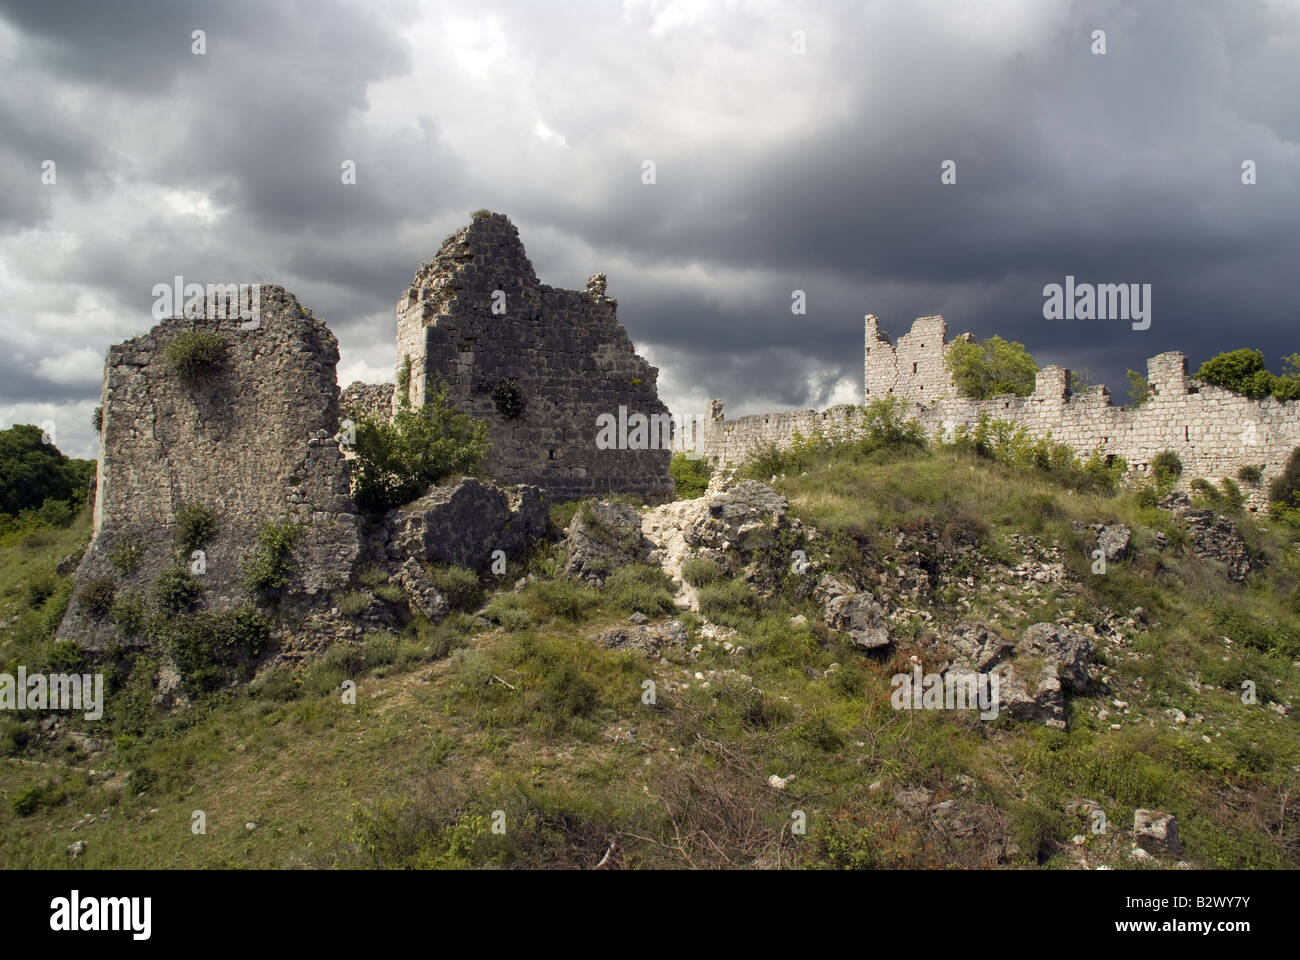 Ruins of Vrana fortress of Knights Templar, where crown of Croatian Kings once kept - Stock Image